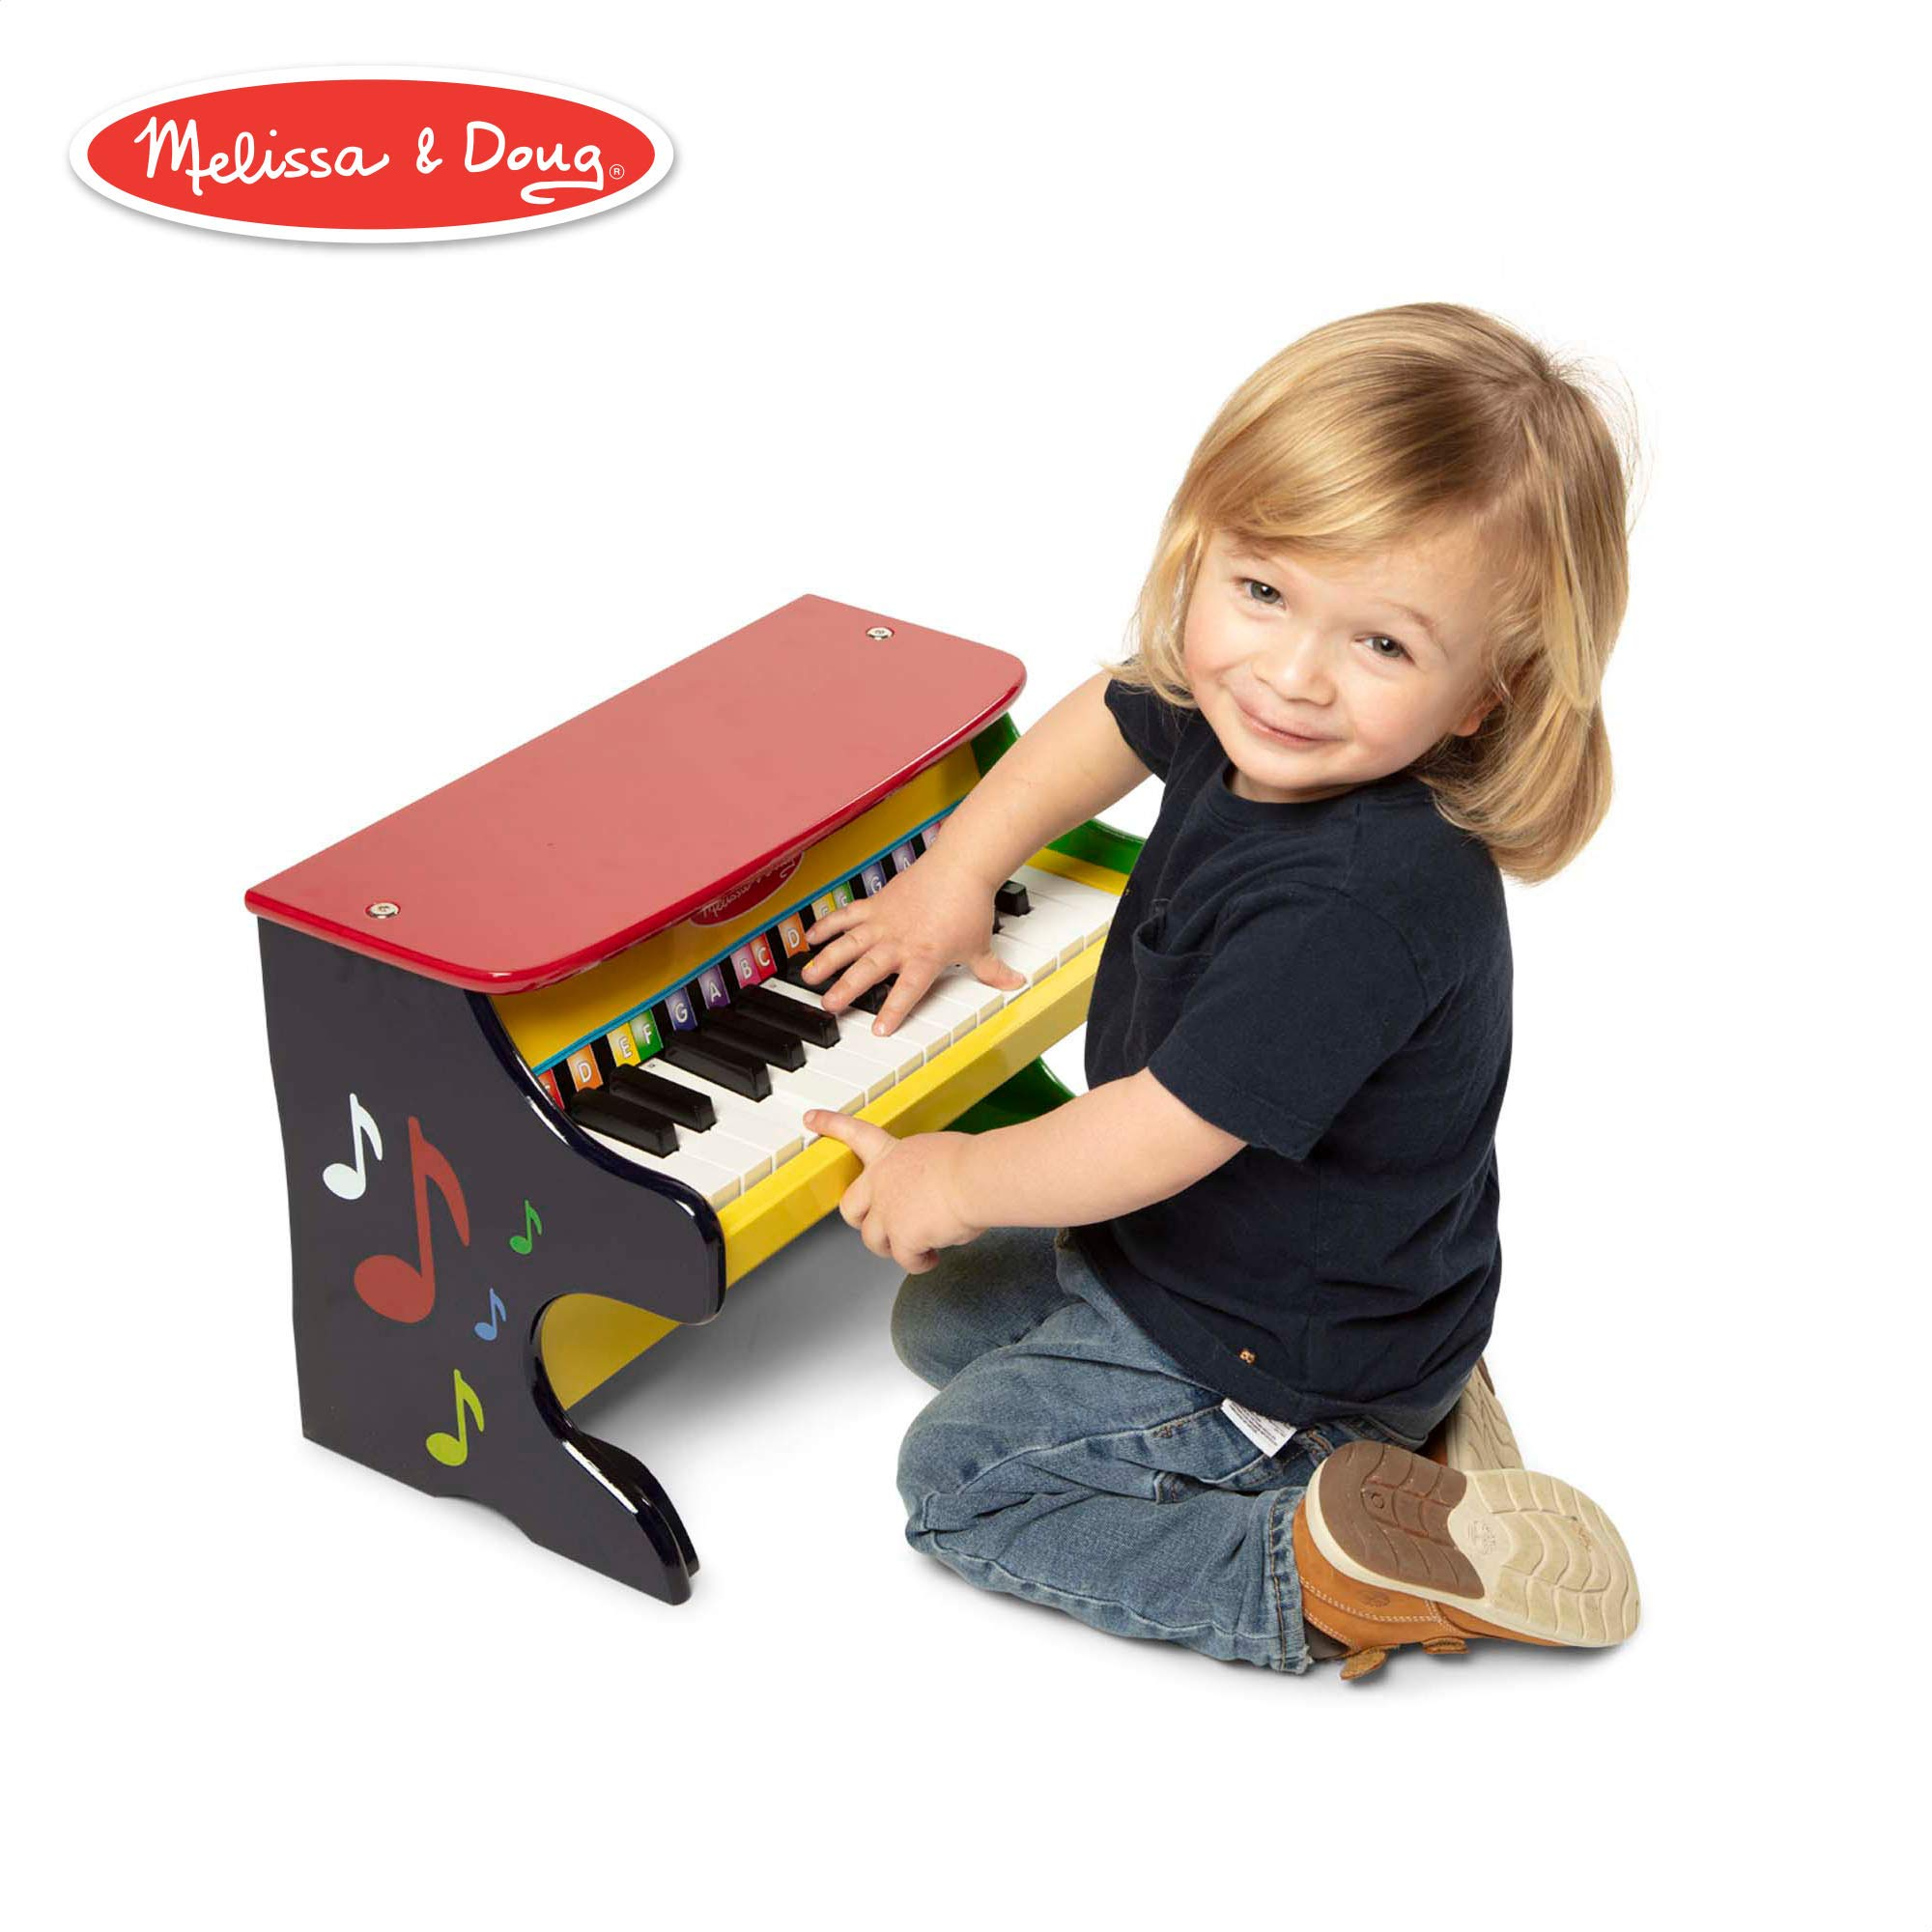 Melissa & Doug Learn-to-Play Piano, Musical Instruments, Solid Wood Construction, 25 Keys and 2 Full Octaves, 11.5'' H x 9.5'' W x 16'' L by Melissa & Doug